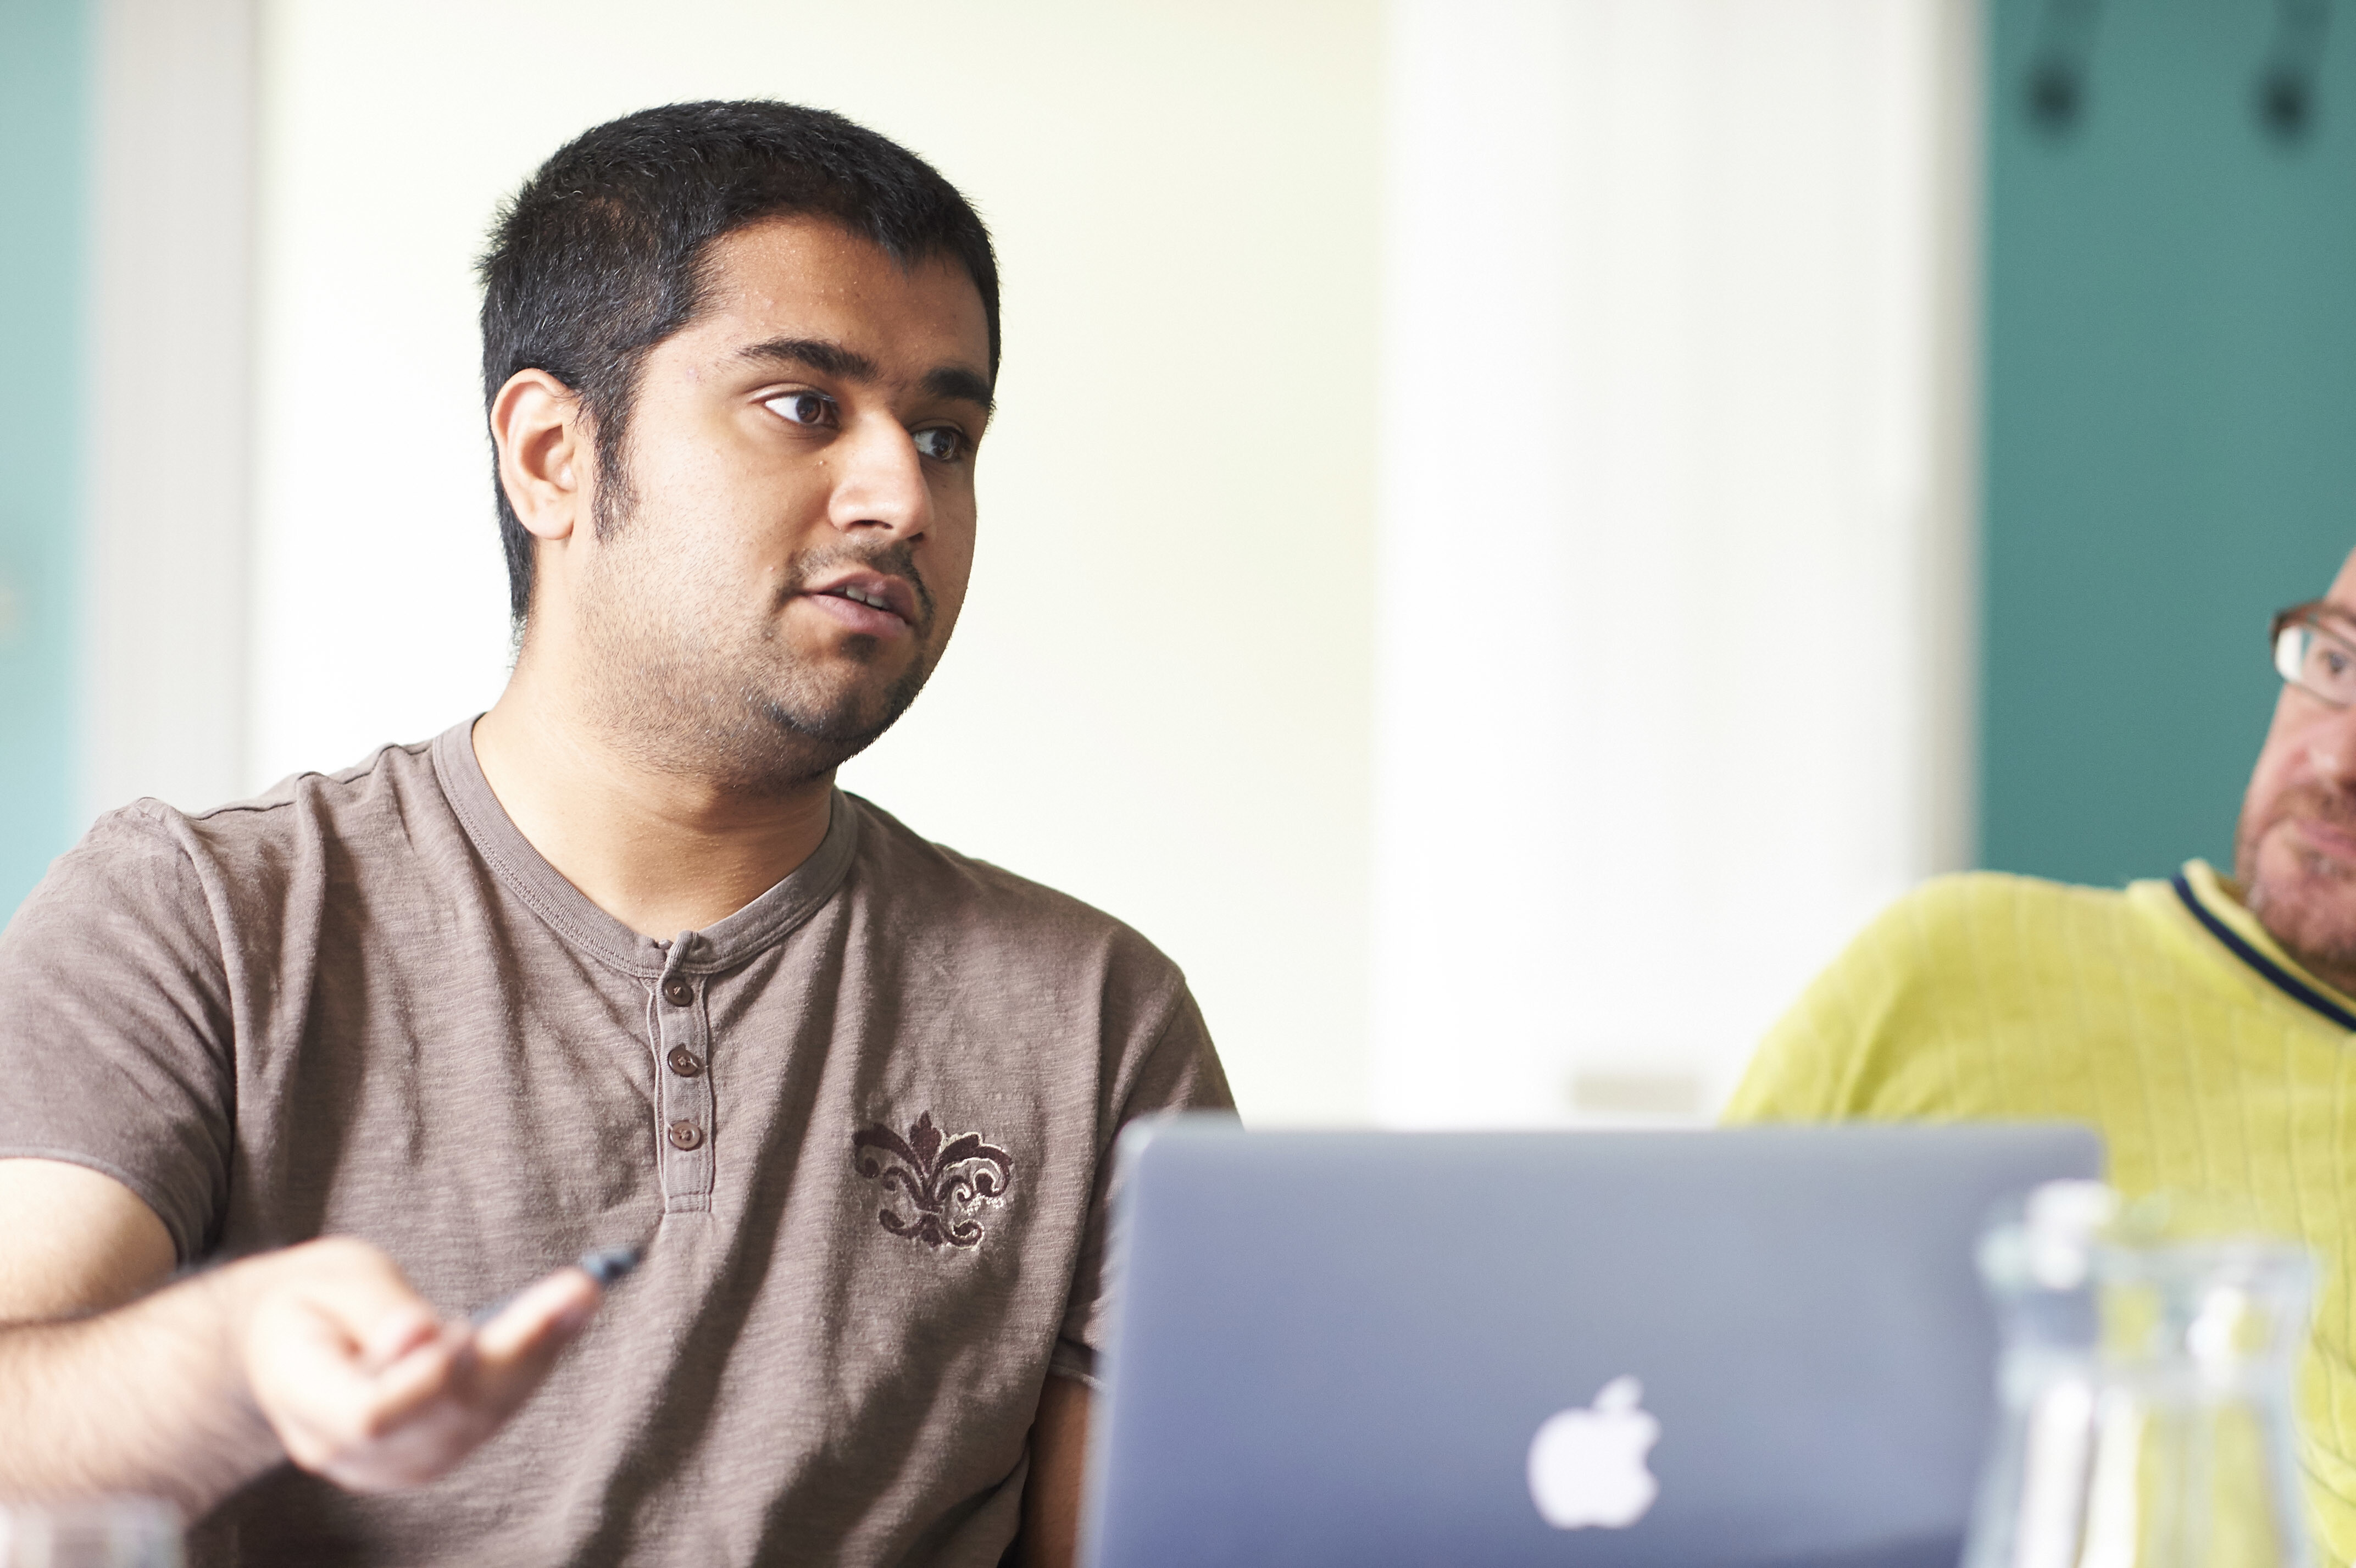 A member of a workshop discussing a project with a MAC laptop